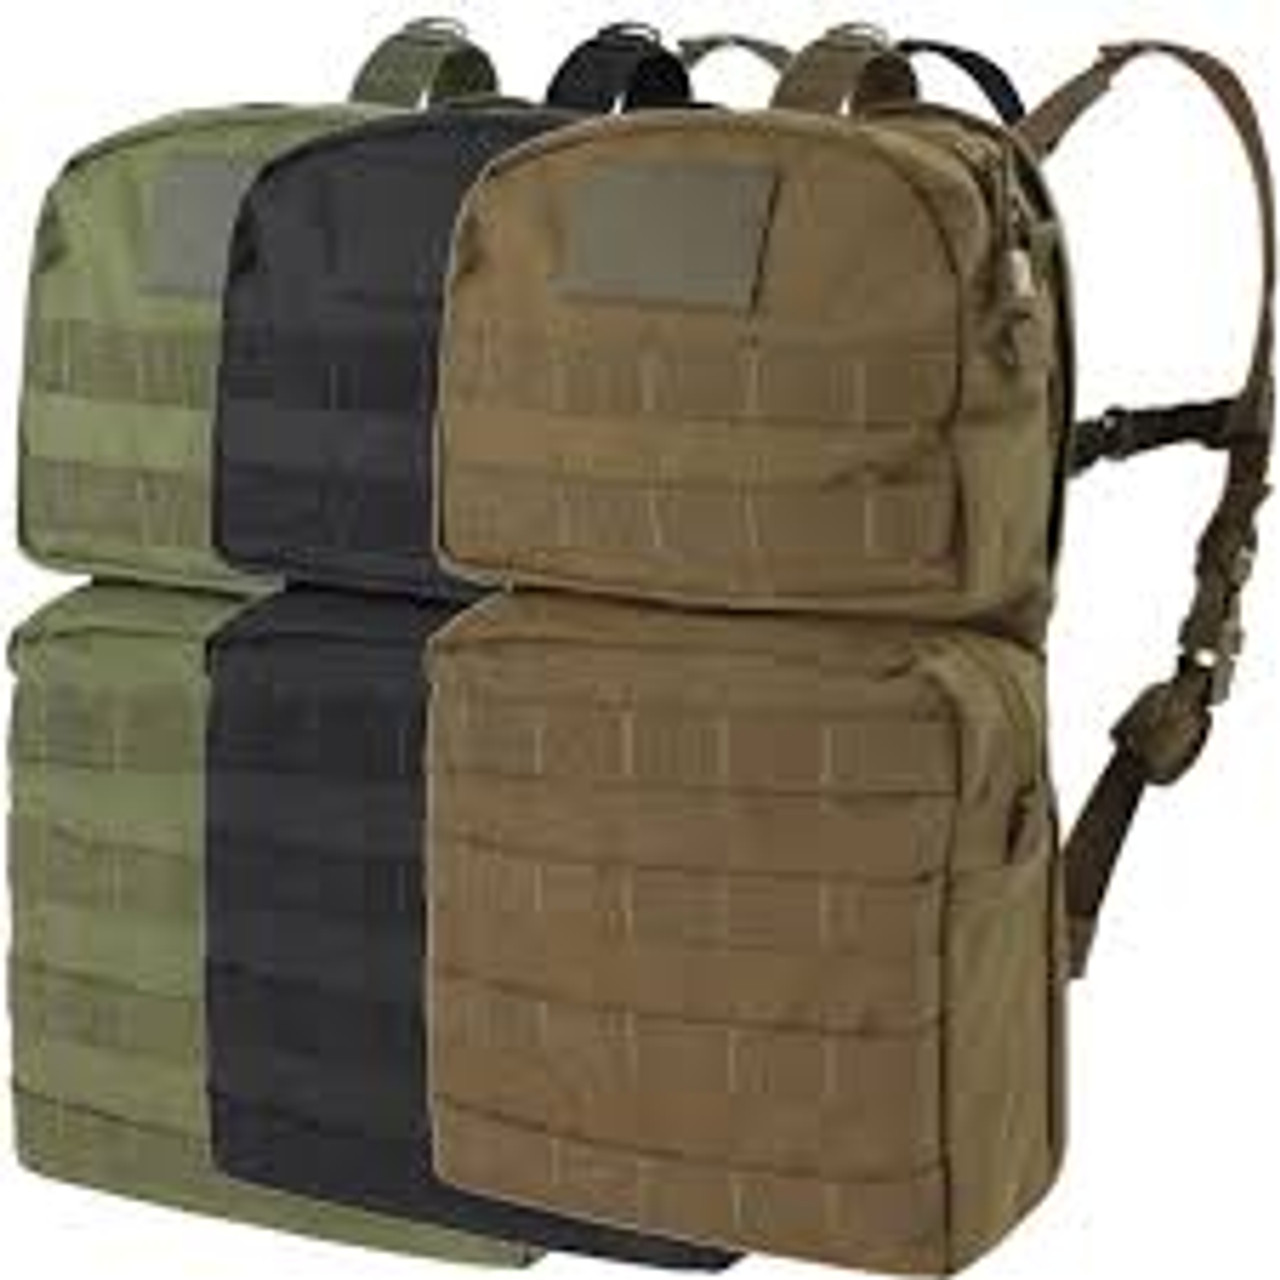 HYDRATION CARRIER 2